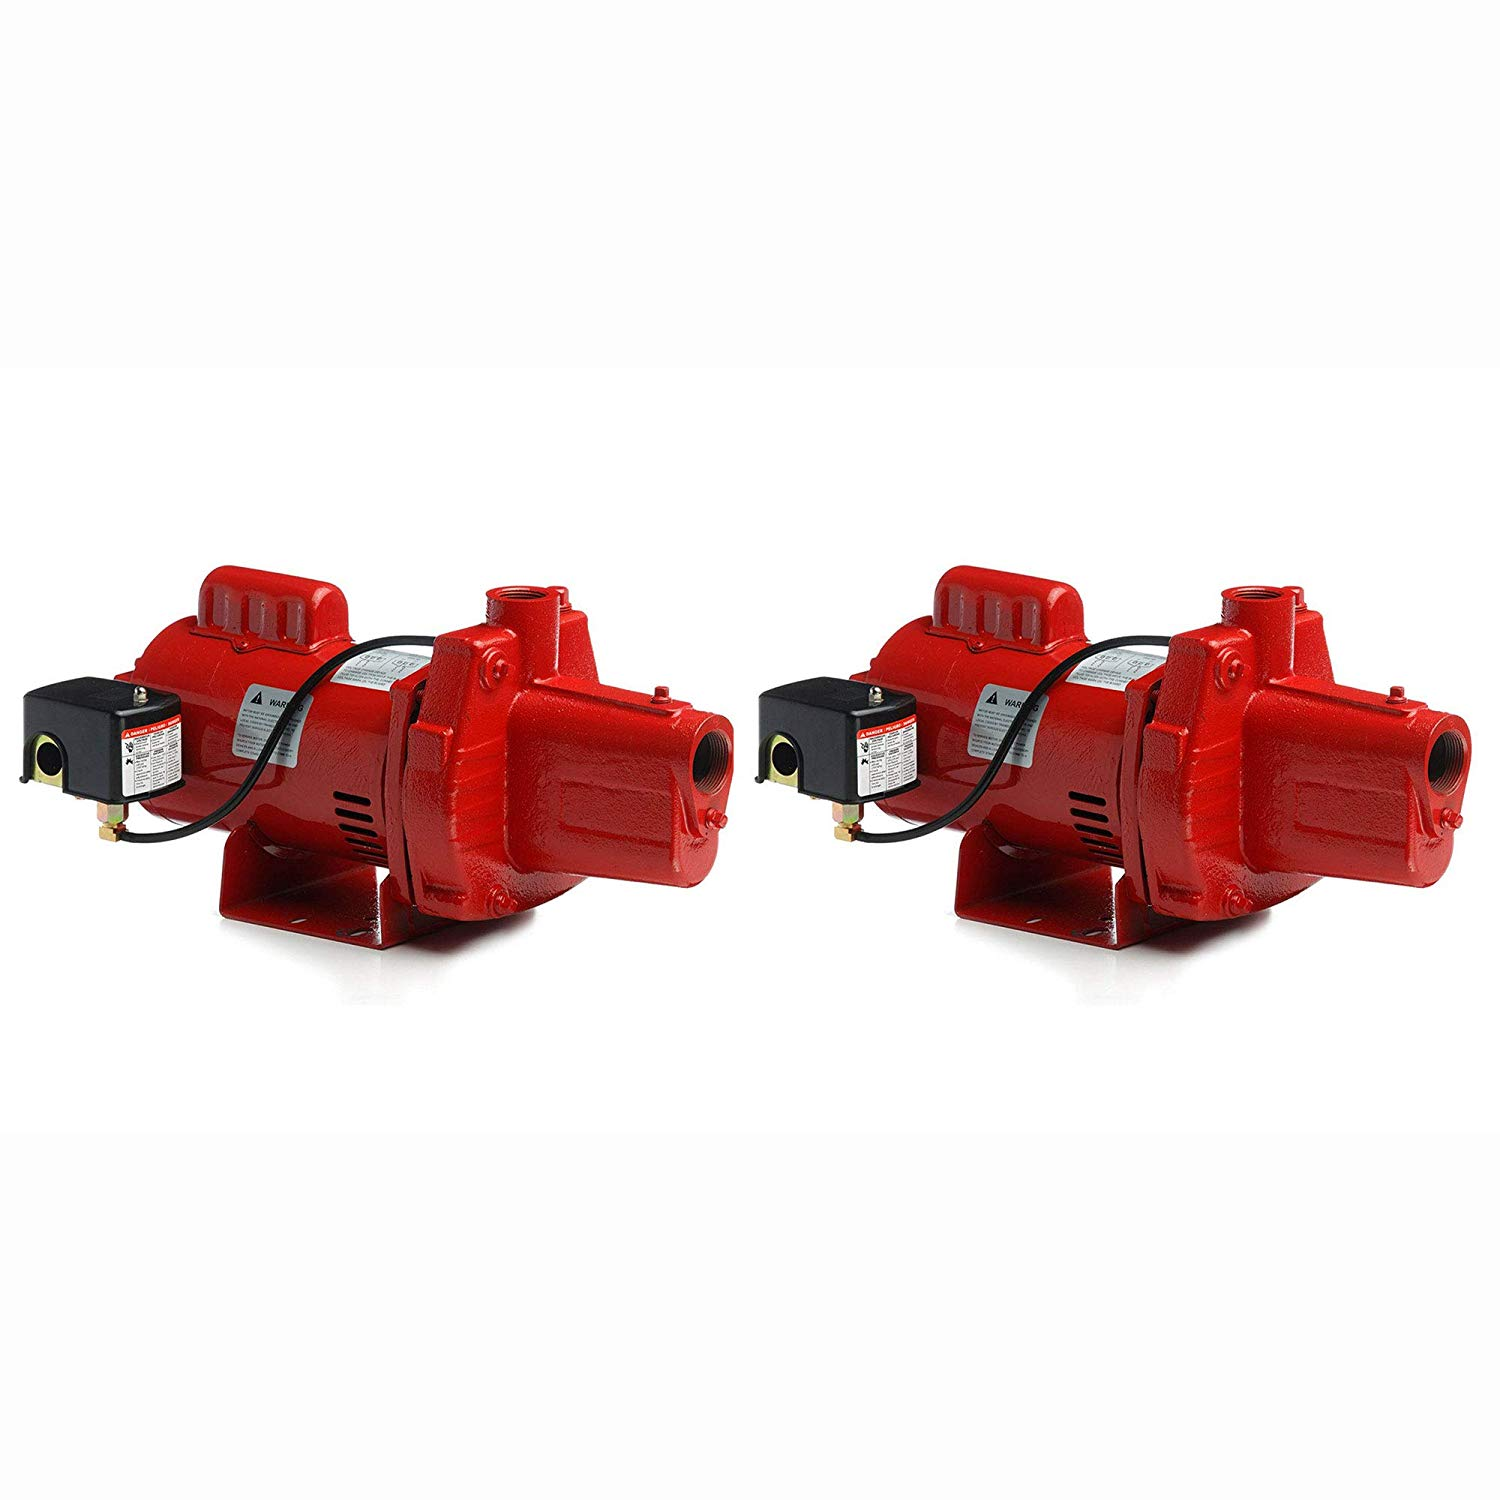 Red Lion RJS-100-PREM 1HP Cast Iron Thermoplastic Shallow Well Jet Pump (2 Pack)